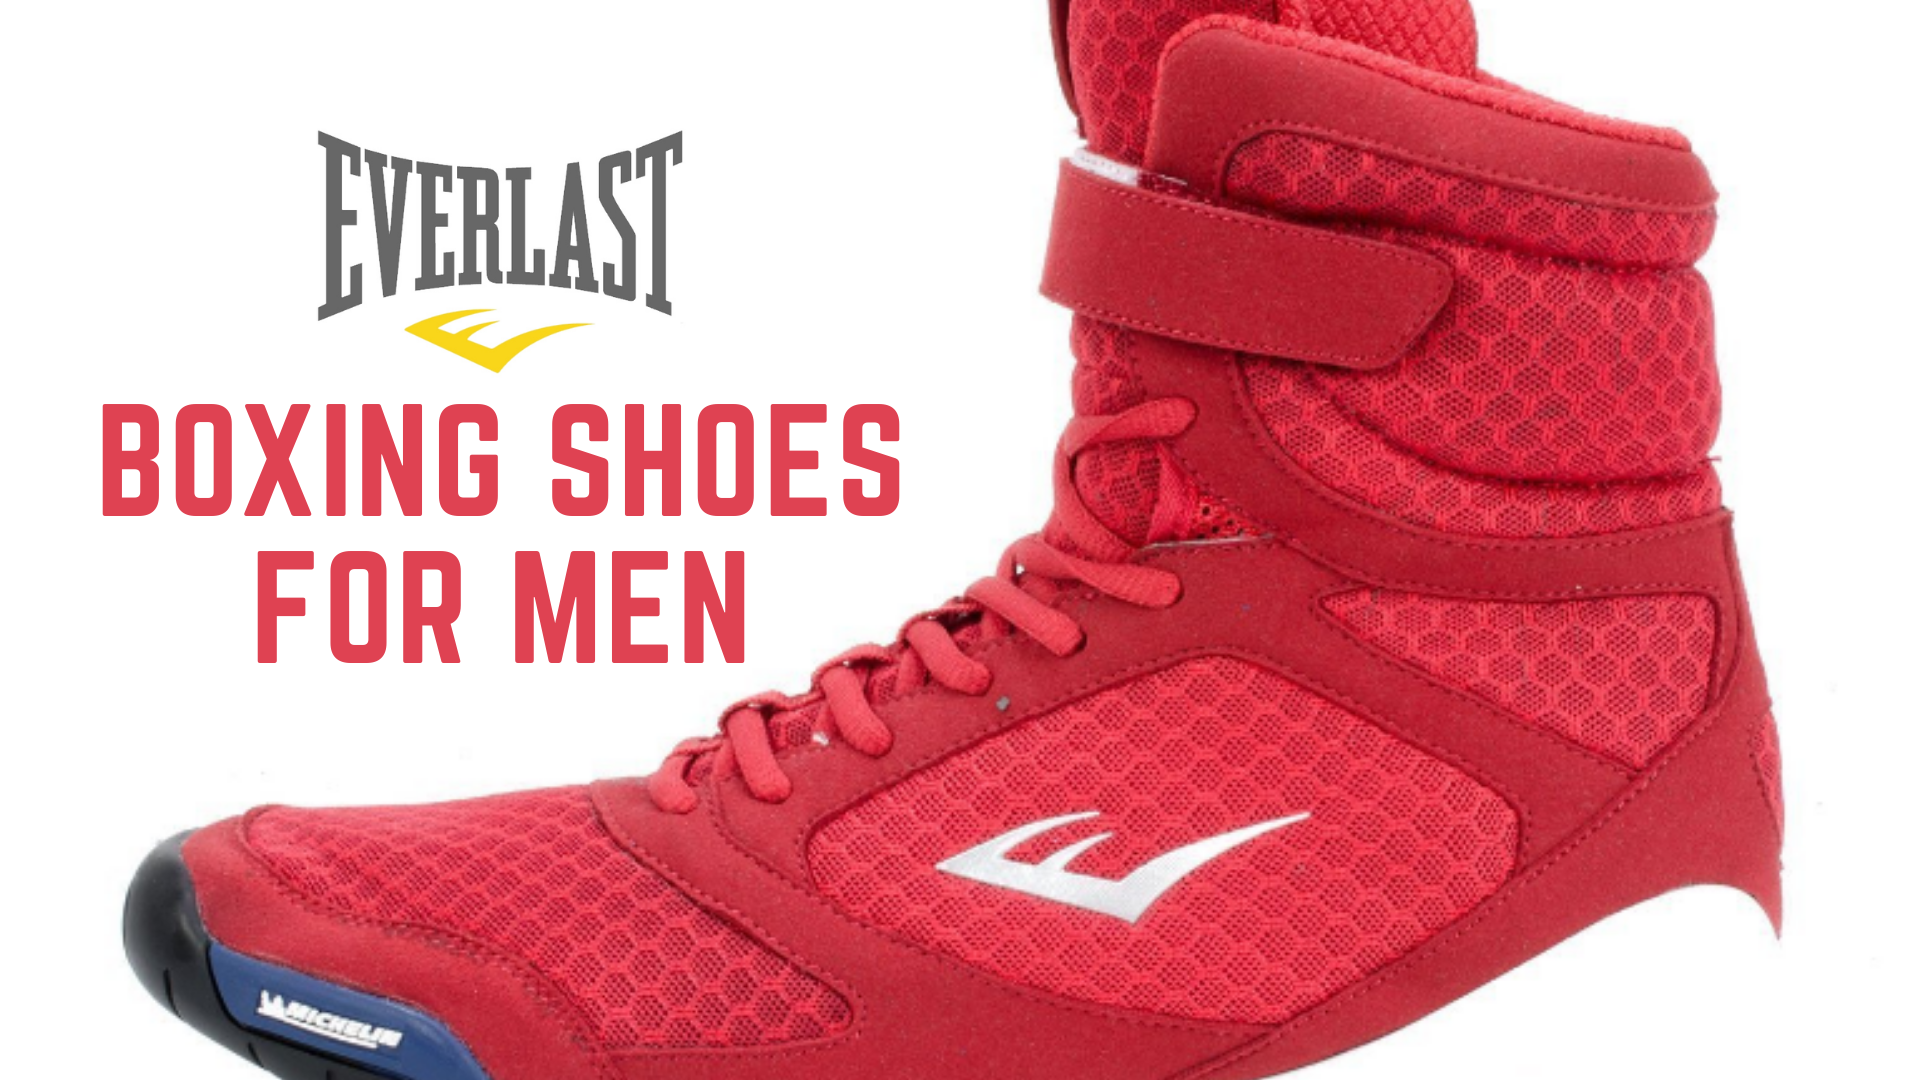 everlast boxing shoes for men